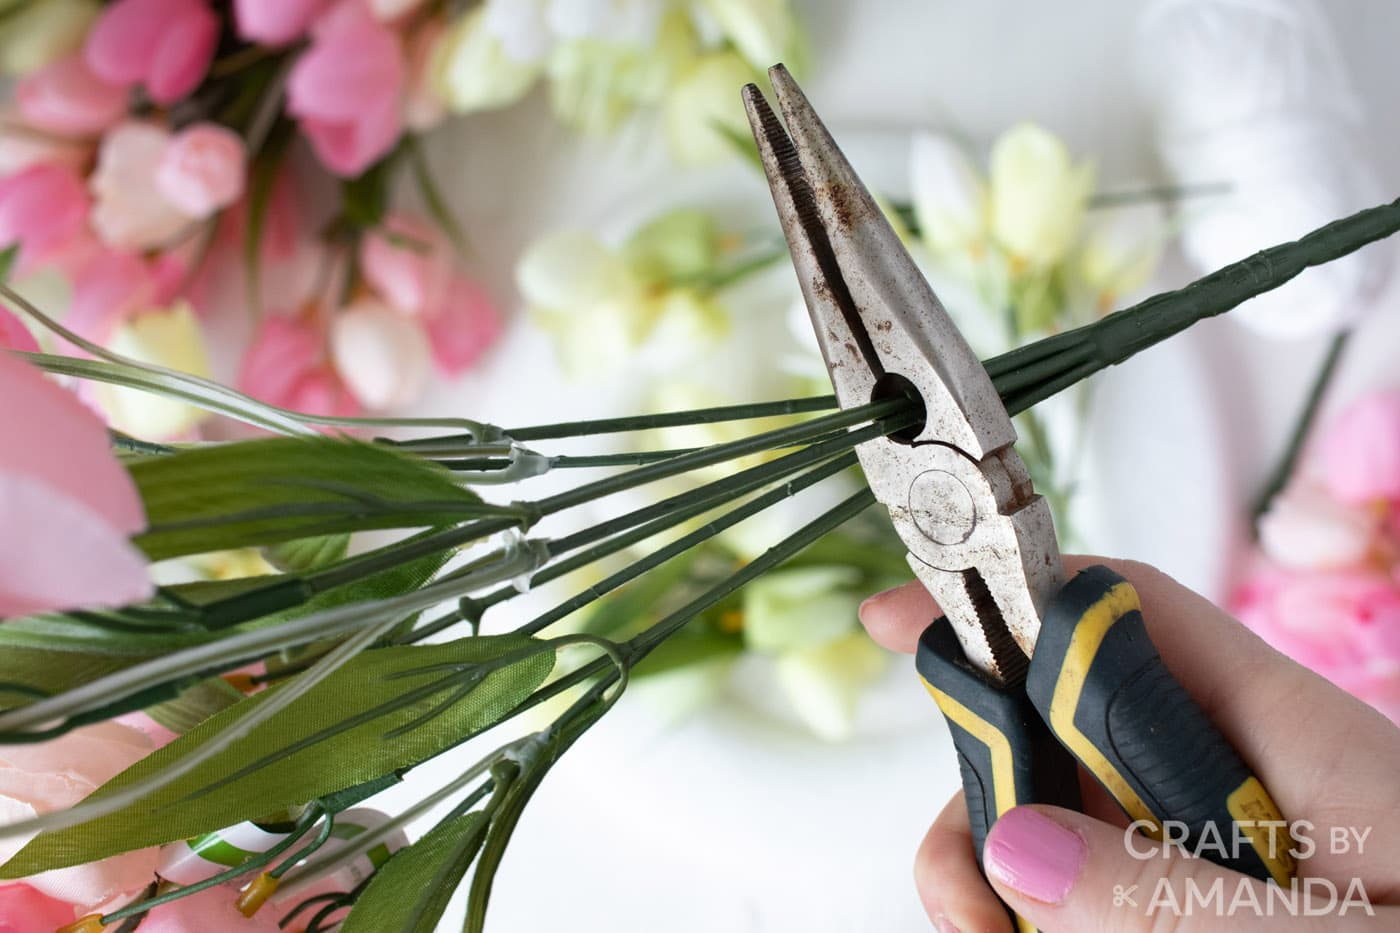 using wire cutters to snip off stem of the tulips